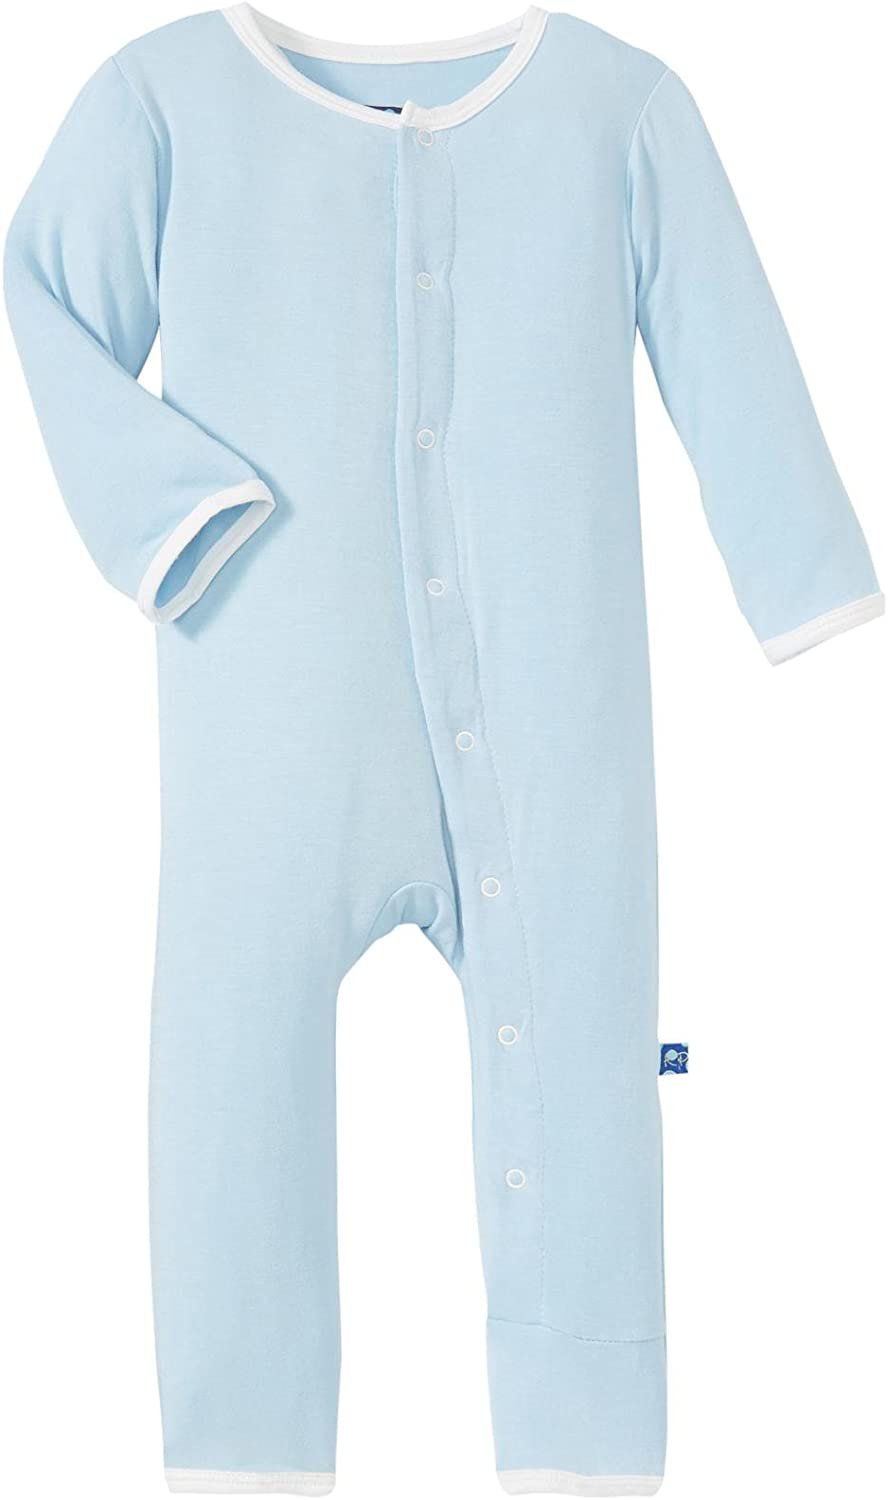 Kickee Pants Baby Boys Infant Applique Coverall